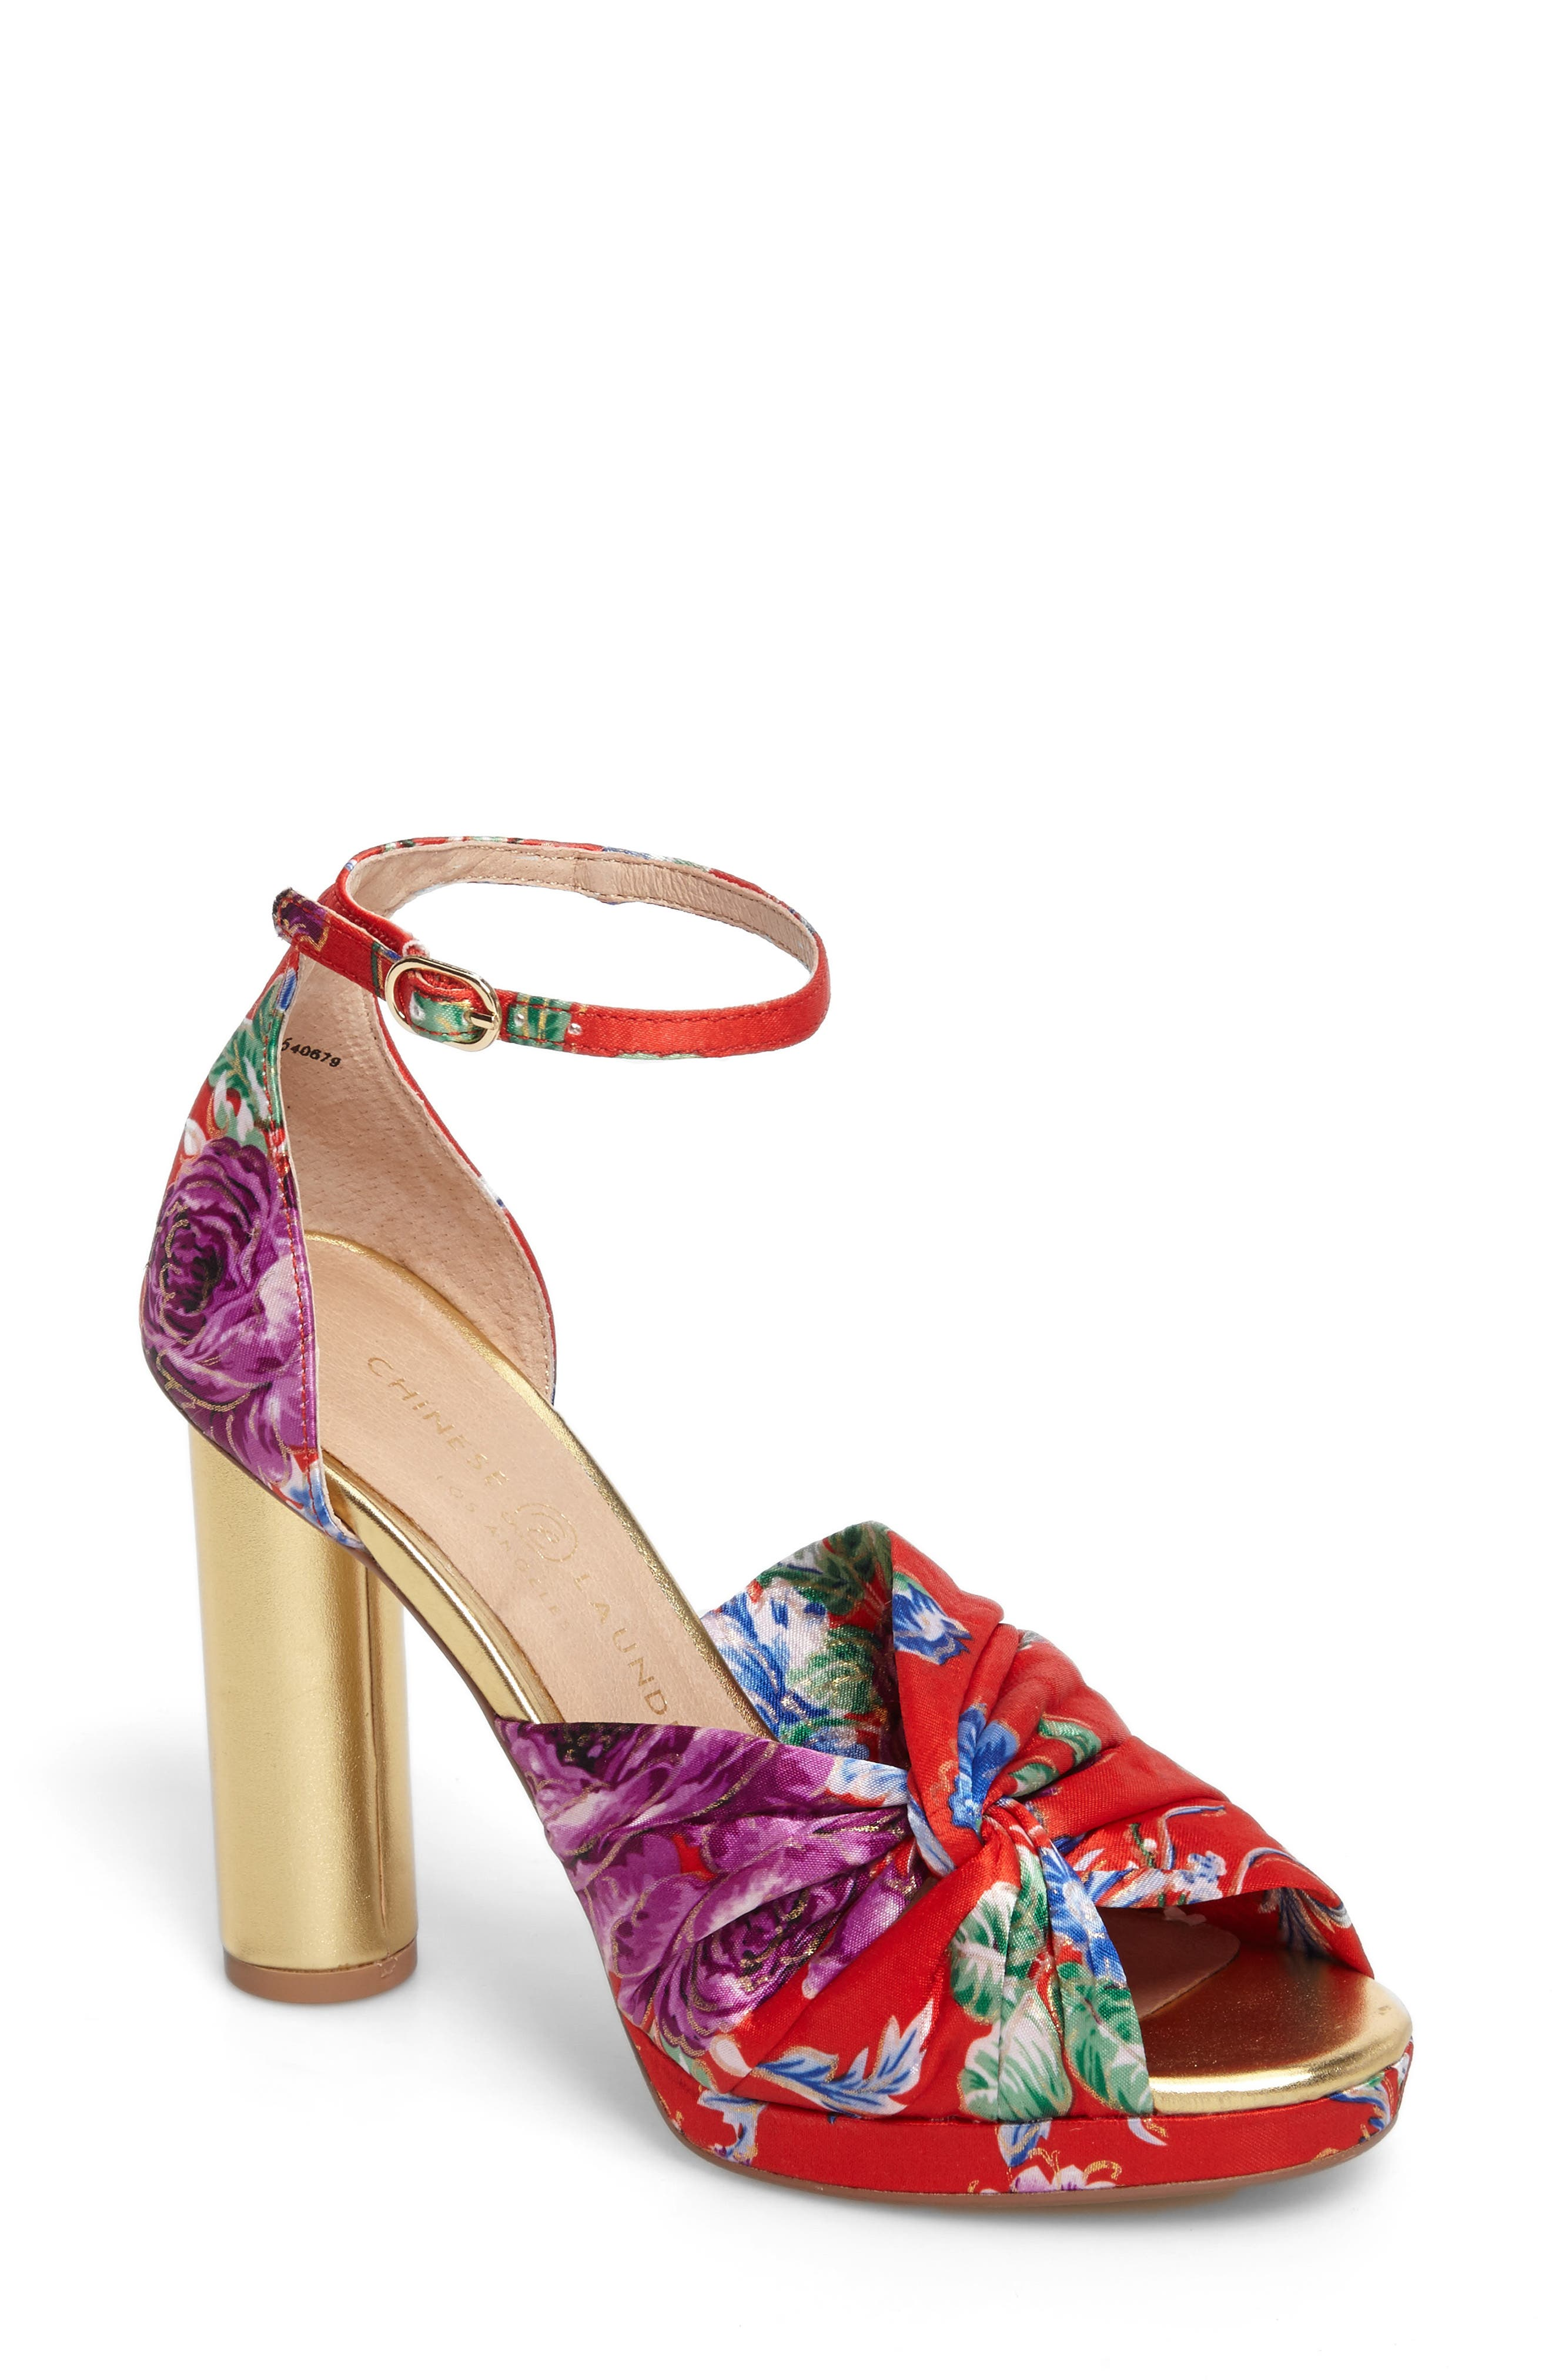 Main Image - Chinese Laundry Flory Knotted Sandal (Women)